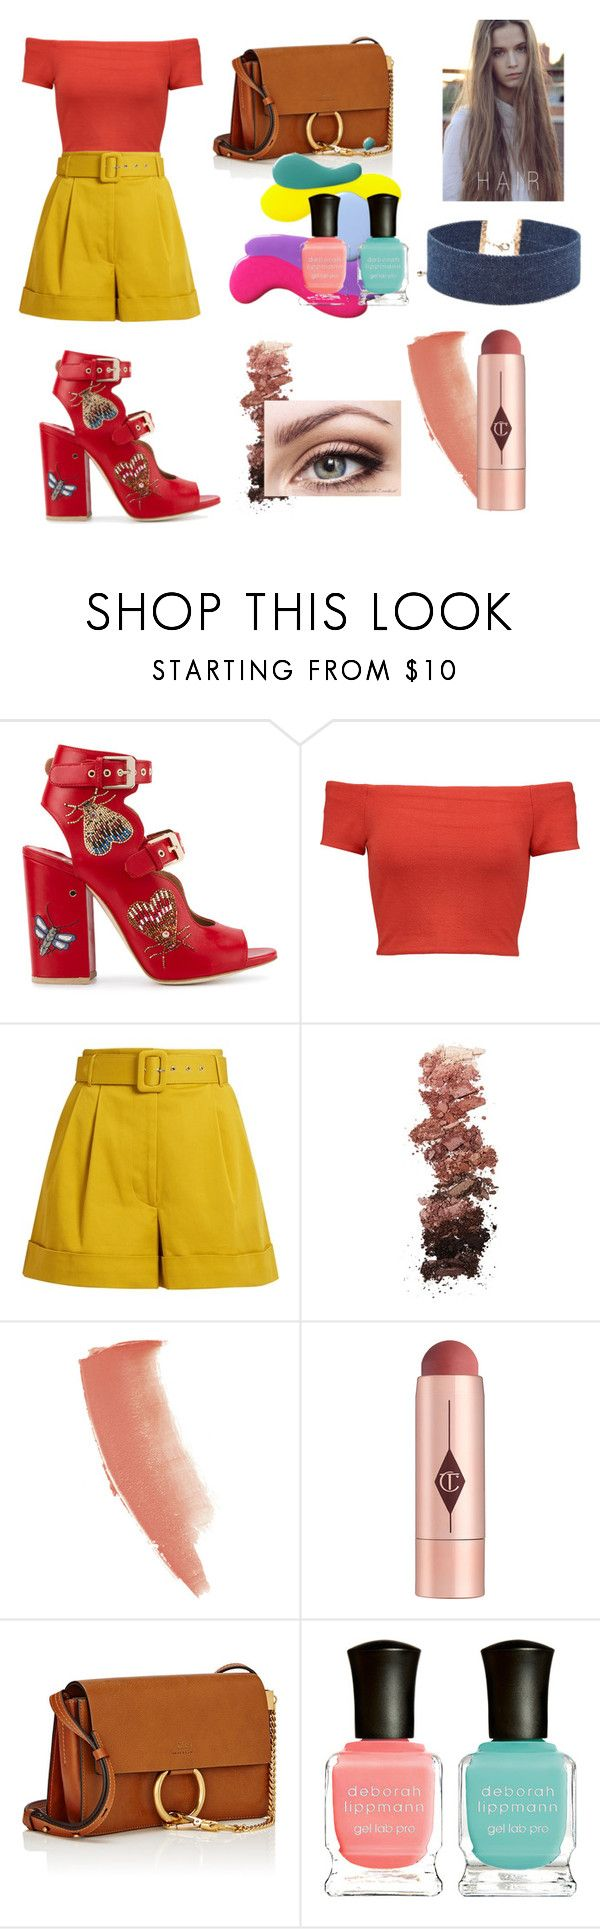 """""""Ryland"""" by jolilollie on Polyvore featuring Laurence Dacade, Alice + Olivia, Isa Arfen, L.A. Girl, Charlotte Tilbury, Chloé, Deborah Lippmann and Forever 21"""